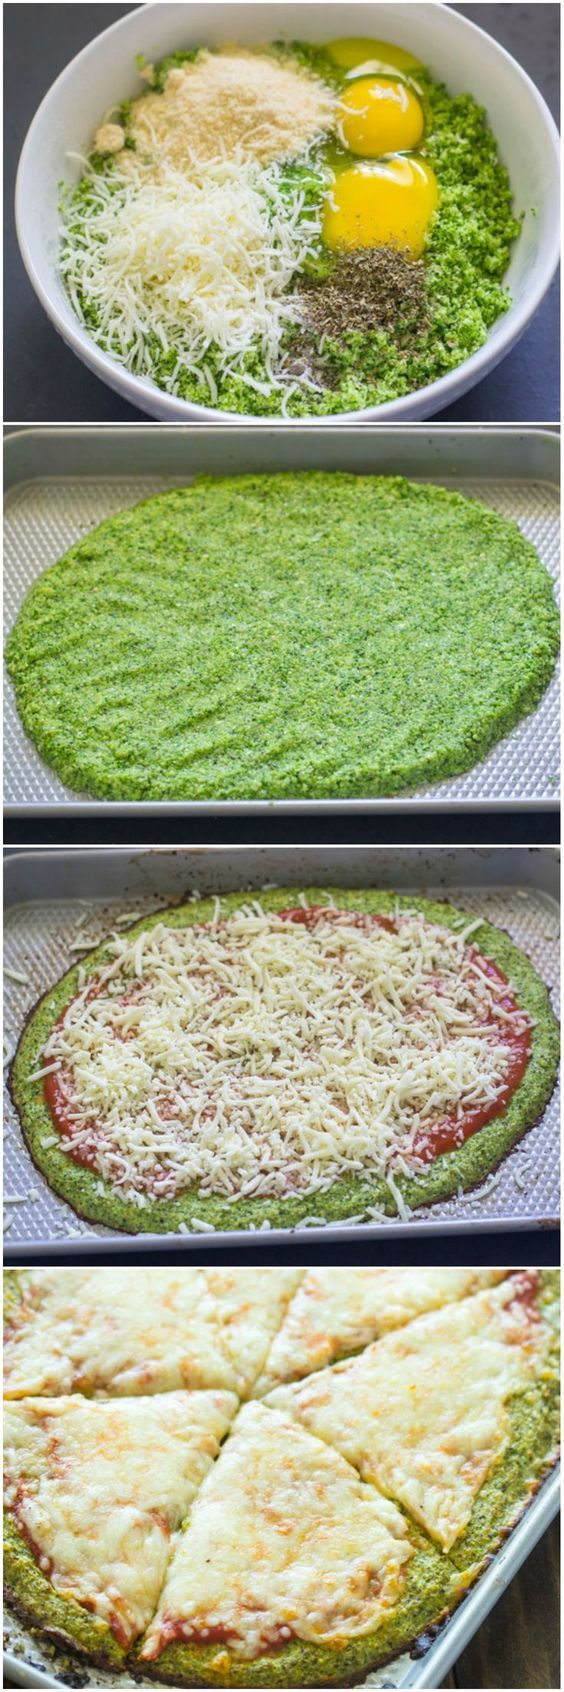 Produce 1 small head Broccoli 1 Veggies Refrigerated 2 Eggs Condiments 1/4 cup Pizza sauce Baking & Spices 1/2 tsp Italian seasoning 1/4 tsp Pepper 1/4 tsp Salt 1 Toppings Dairy 1 cup Cheese 1/4 cup Mozzarella cheese 1/4 cup Parmesan cheese